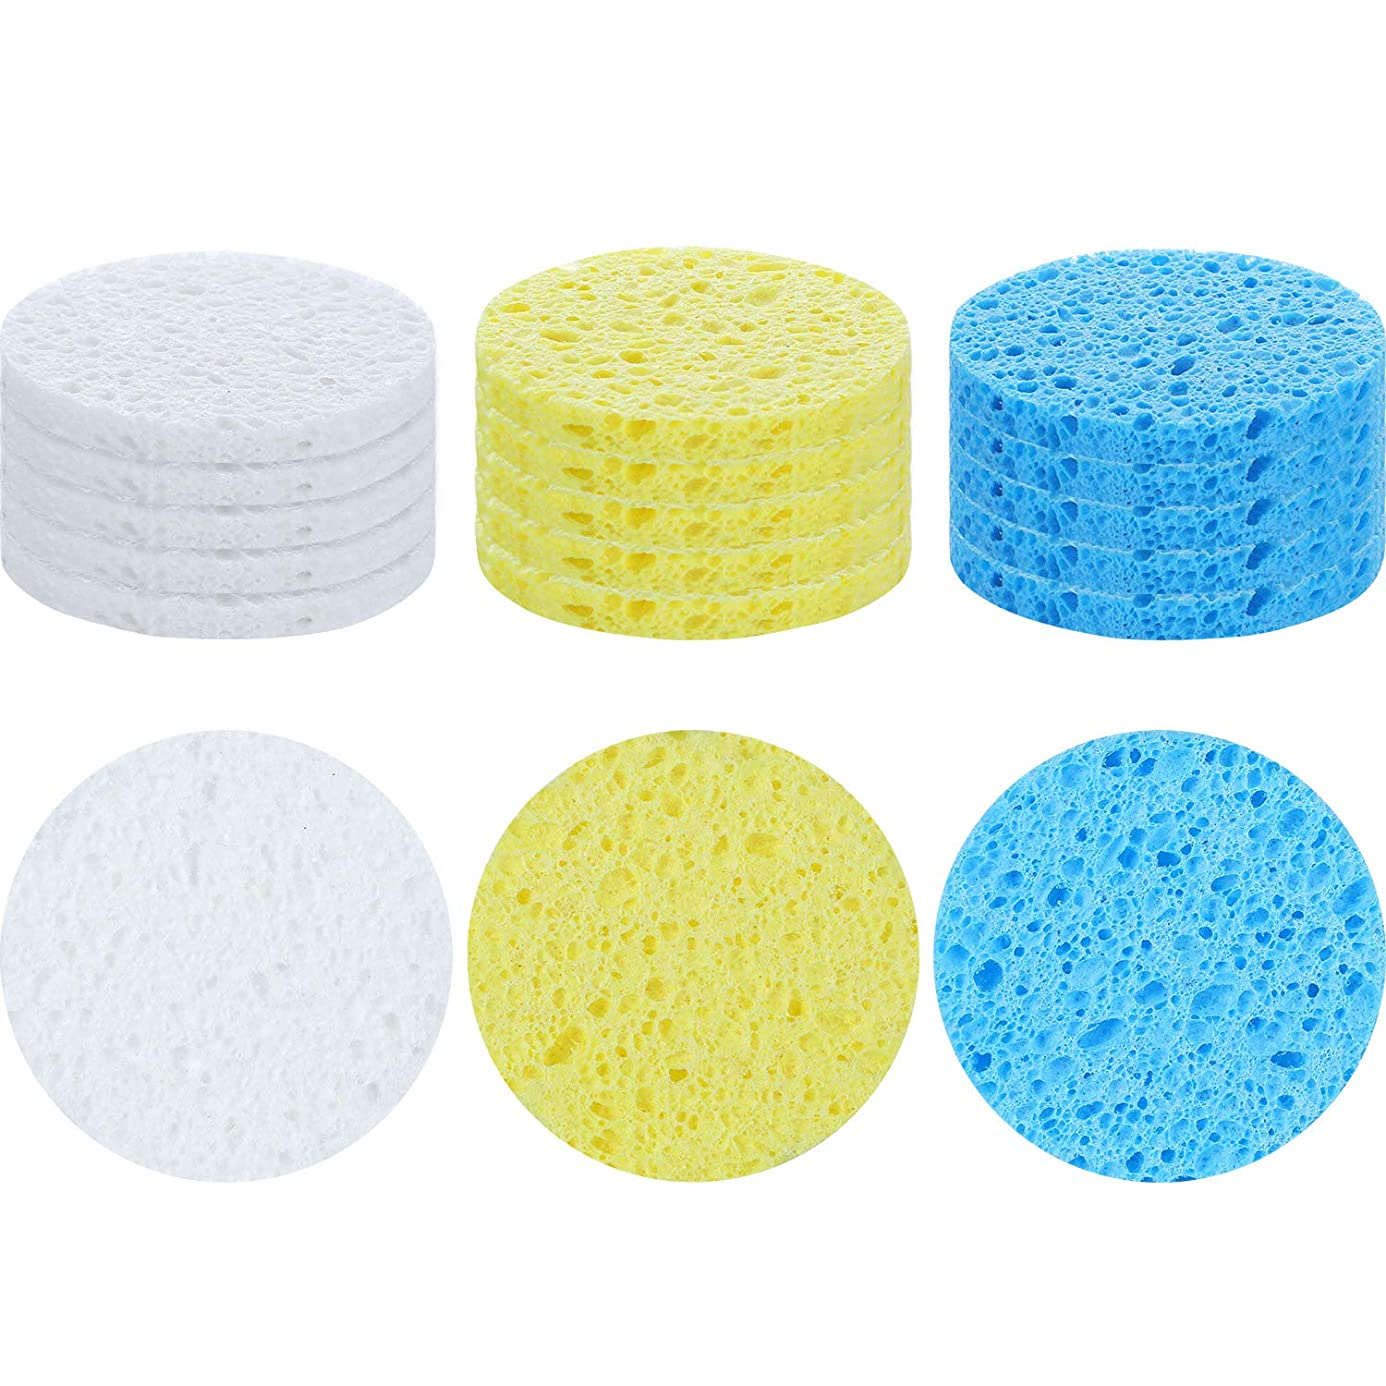 15 Pieces Round Painting Synthetic Sponge Pottery Sponge Shaping Sponge Tools for Pottery, Clay, Painting and Crafts, 3 Colors rfc0691808